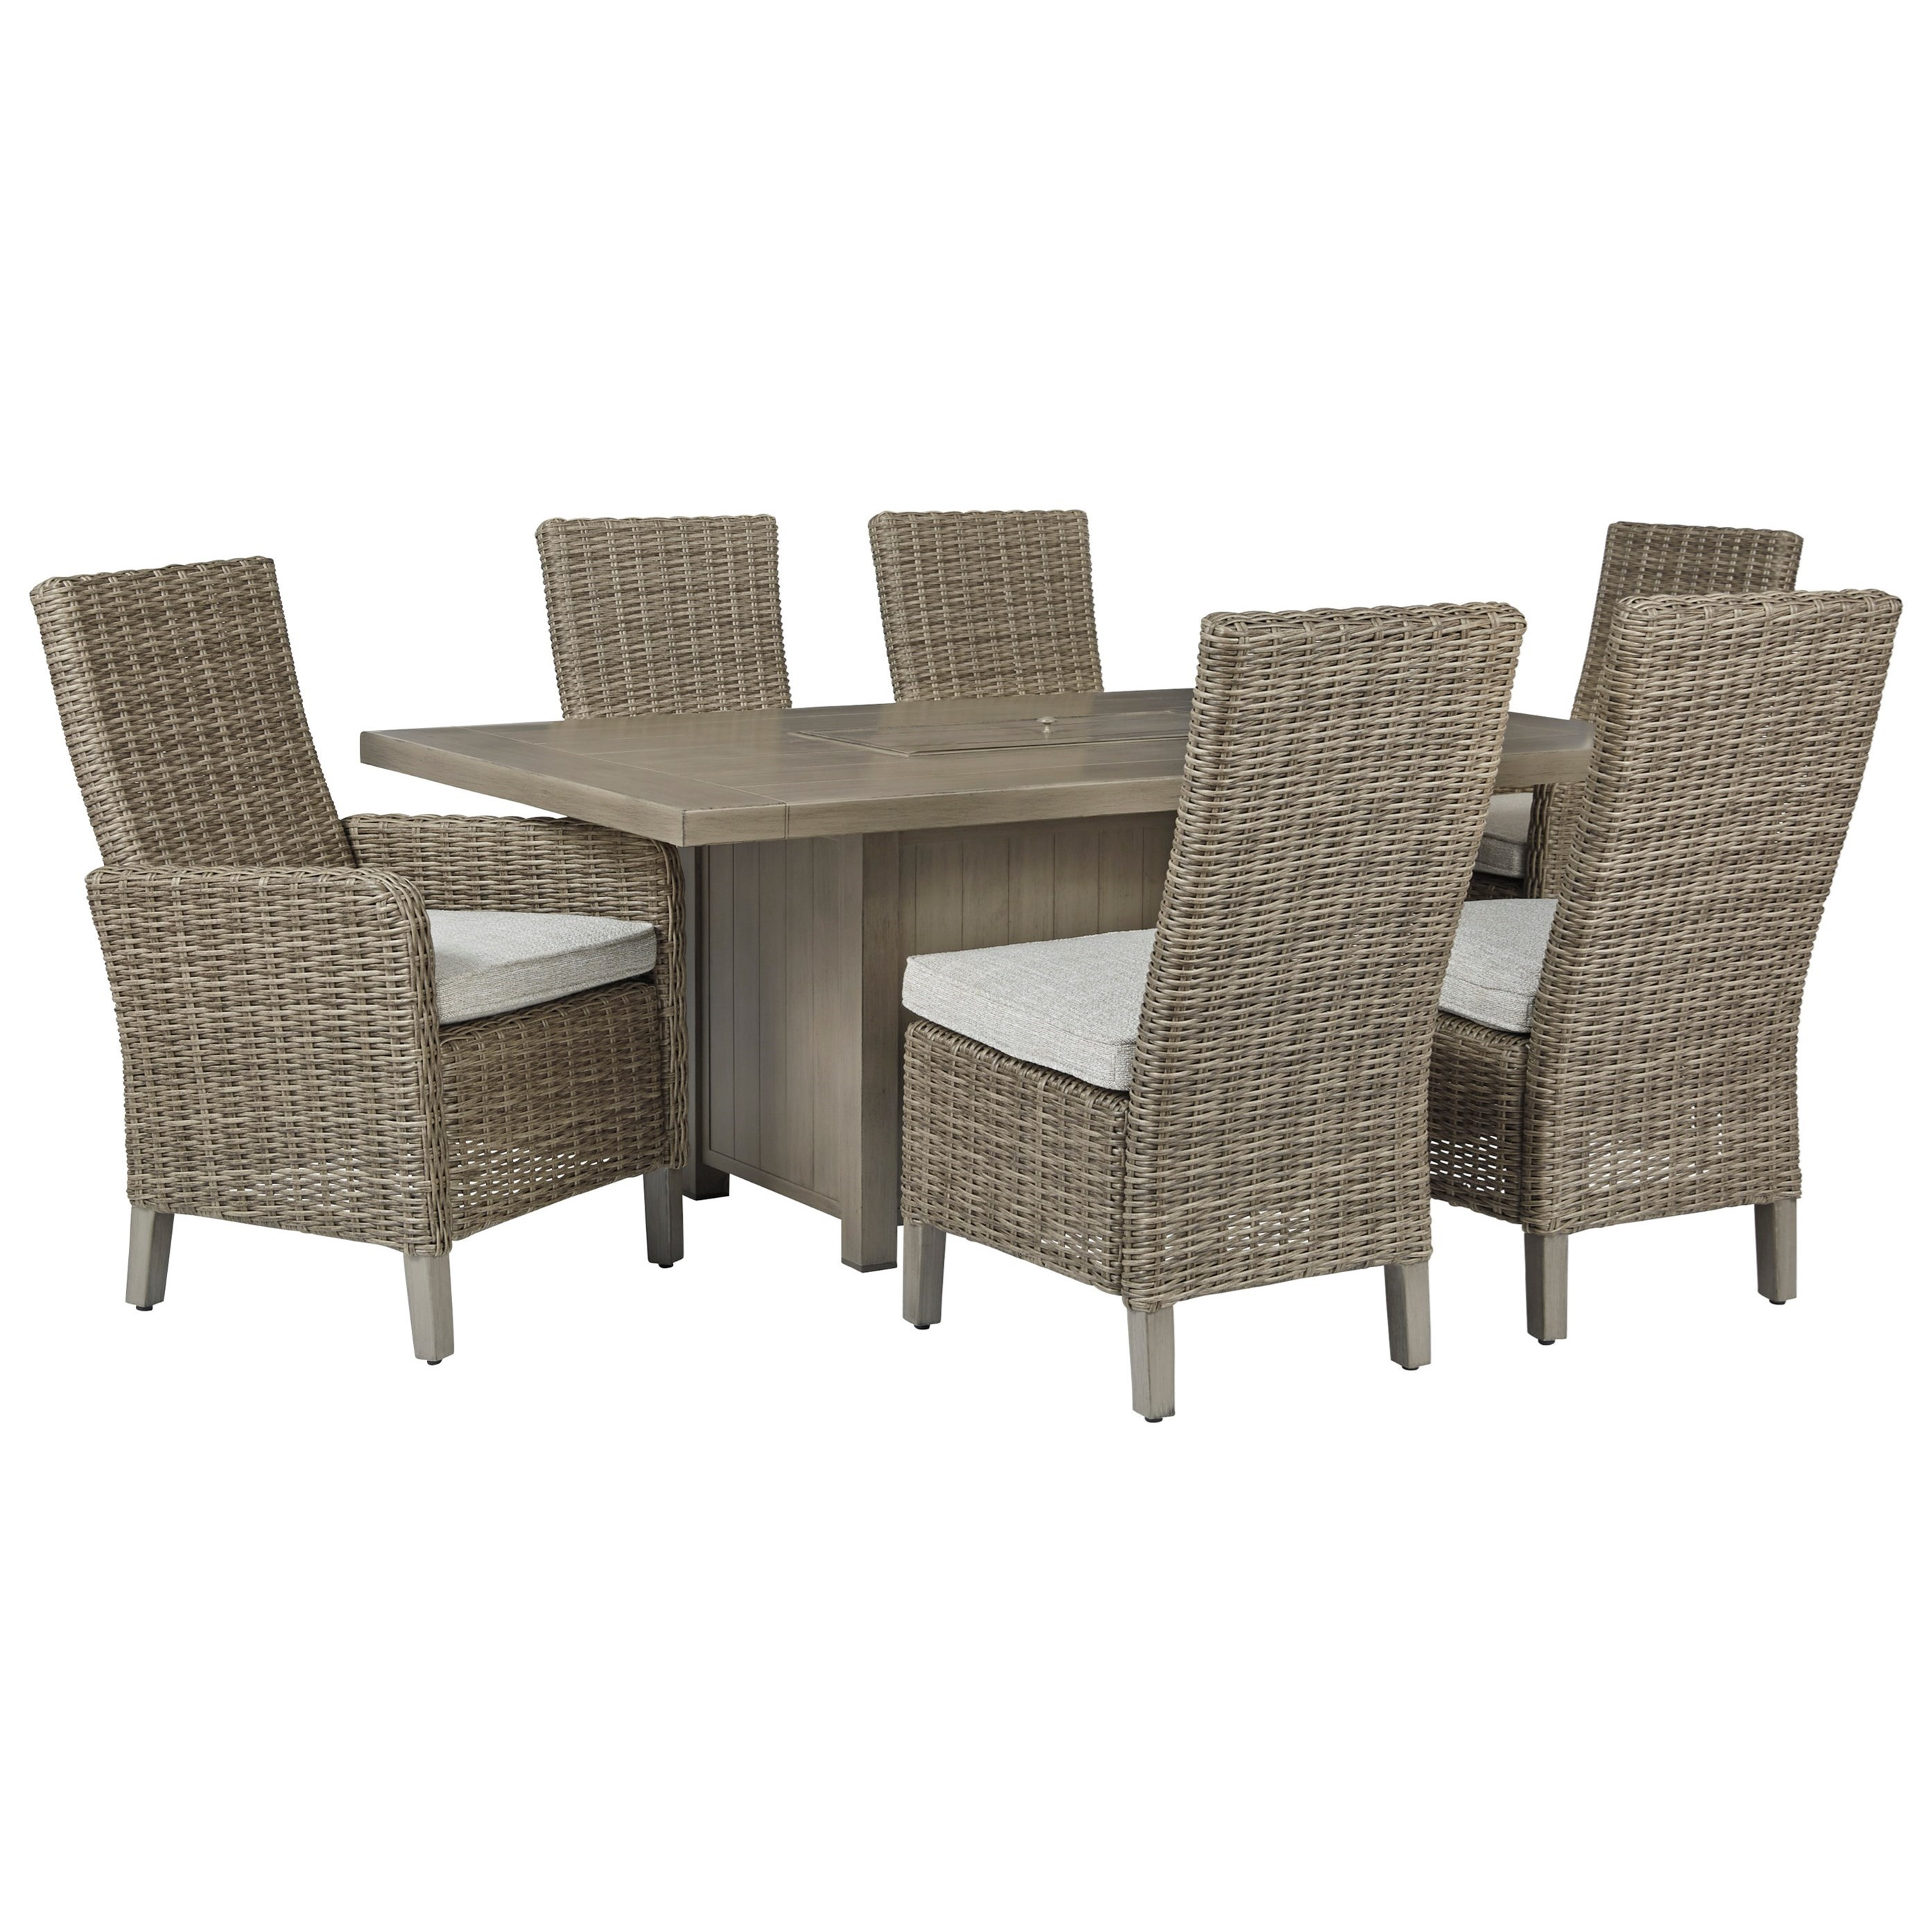 Windon Barn 7-Piece Rectangular Fire Pit Table Set by Signature Design by Ashley at Furniture Fair - North Carolina